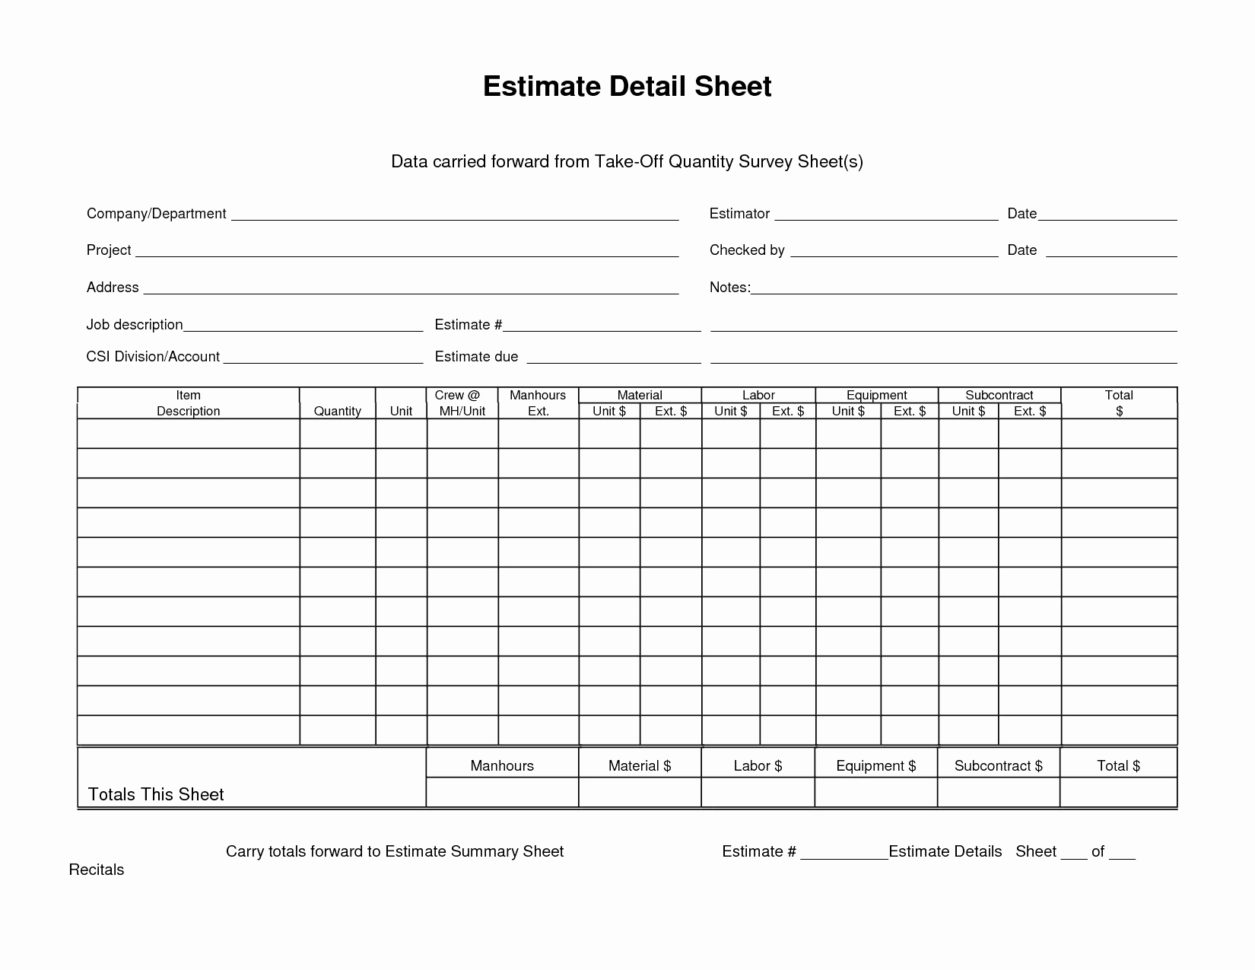 Rebar Estimate Excel Spreadsheet Regarding Structuraleel Takeoff Spreadsheet Unique Fabrication Example Of